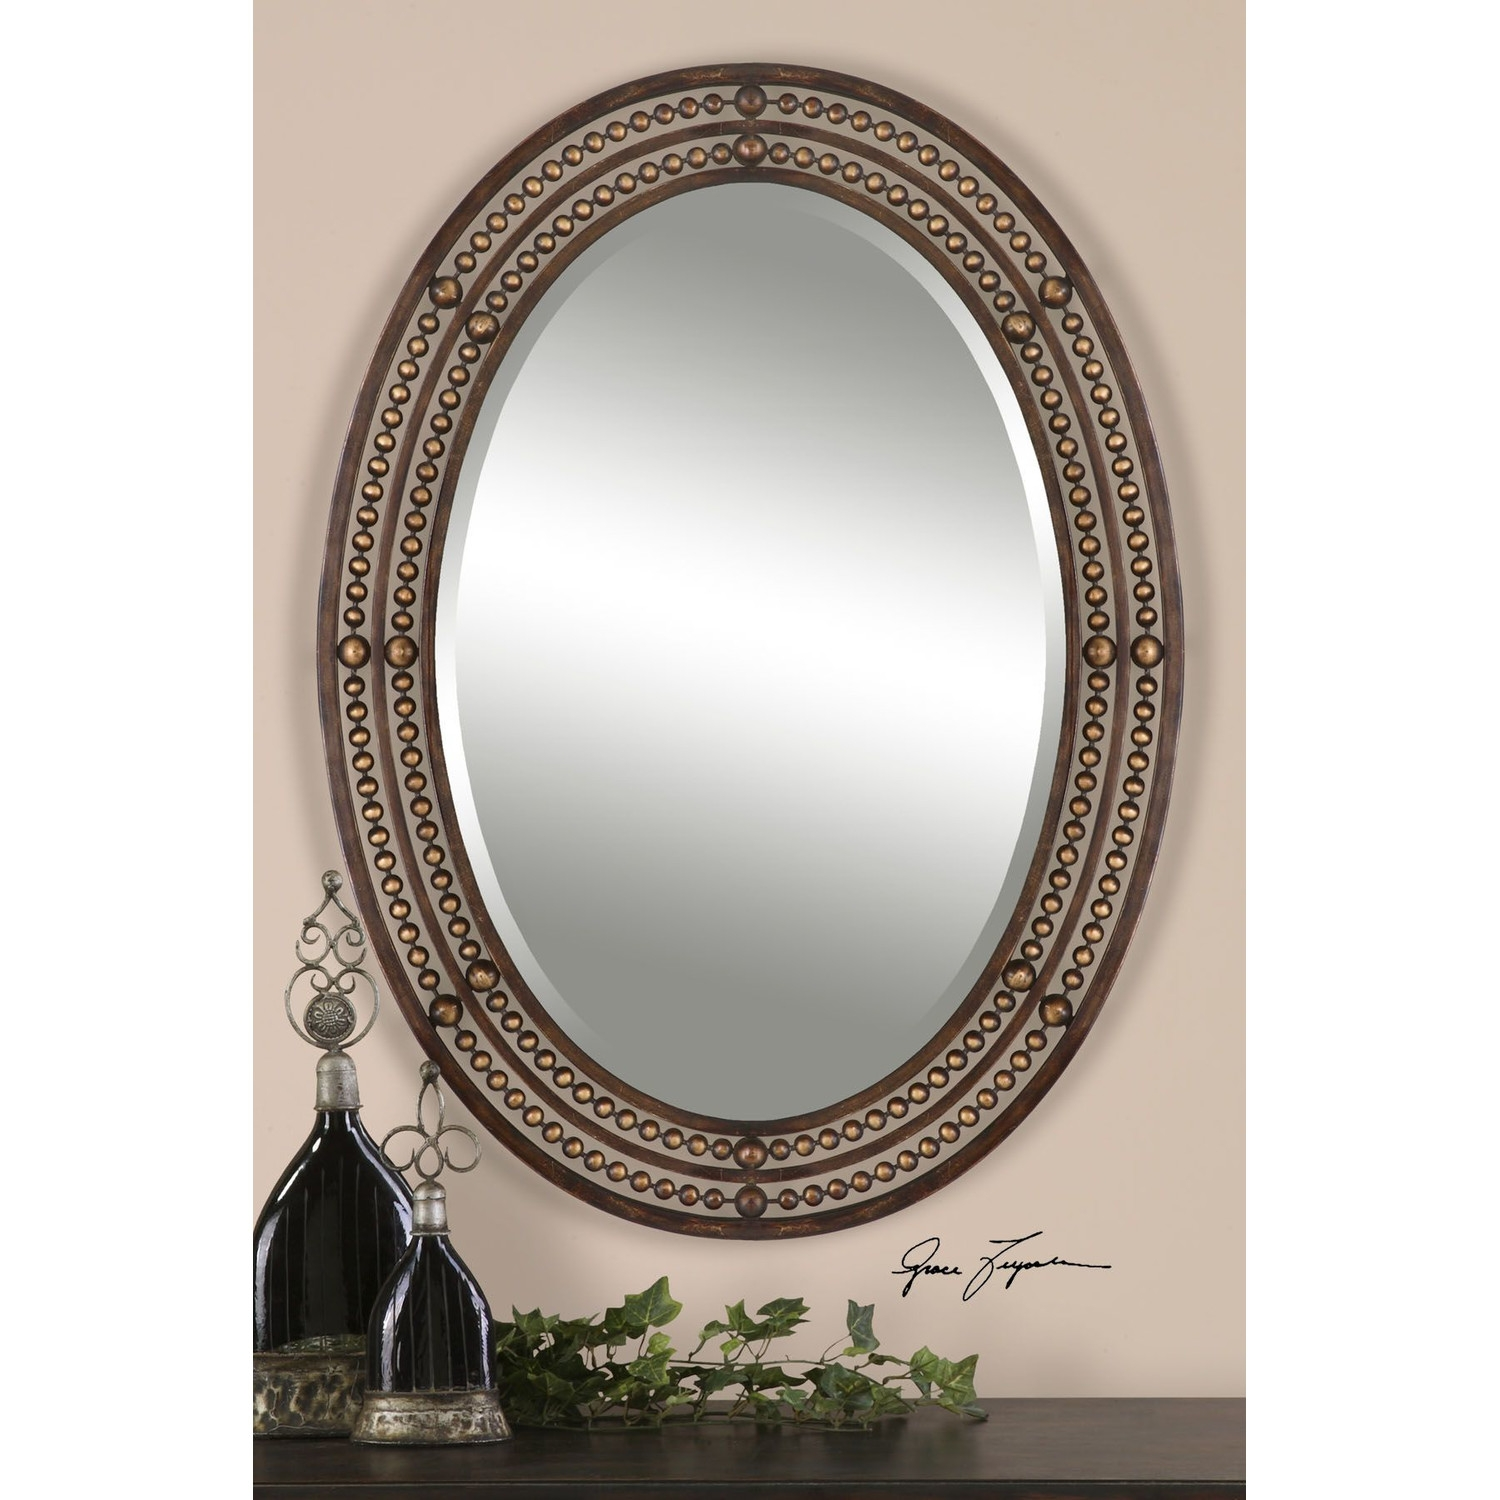 Unique Oval Bathroom Mirrors On Sale 67 For Your With Oval Pertaining To Unique Mirrors For Sale (Photo 6 of 15)